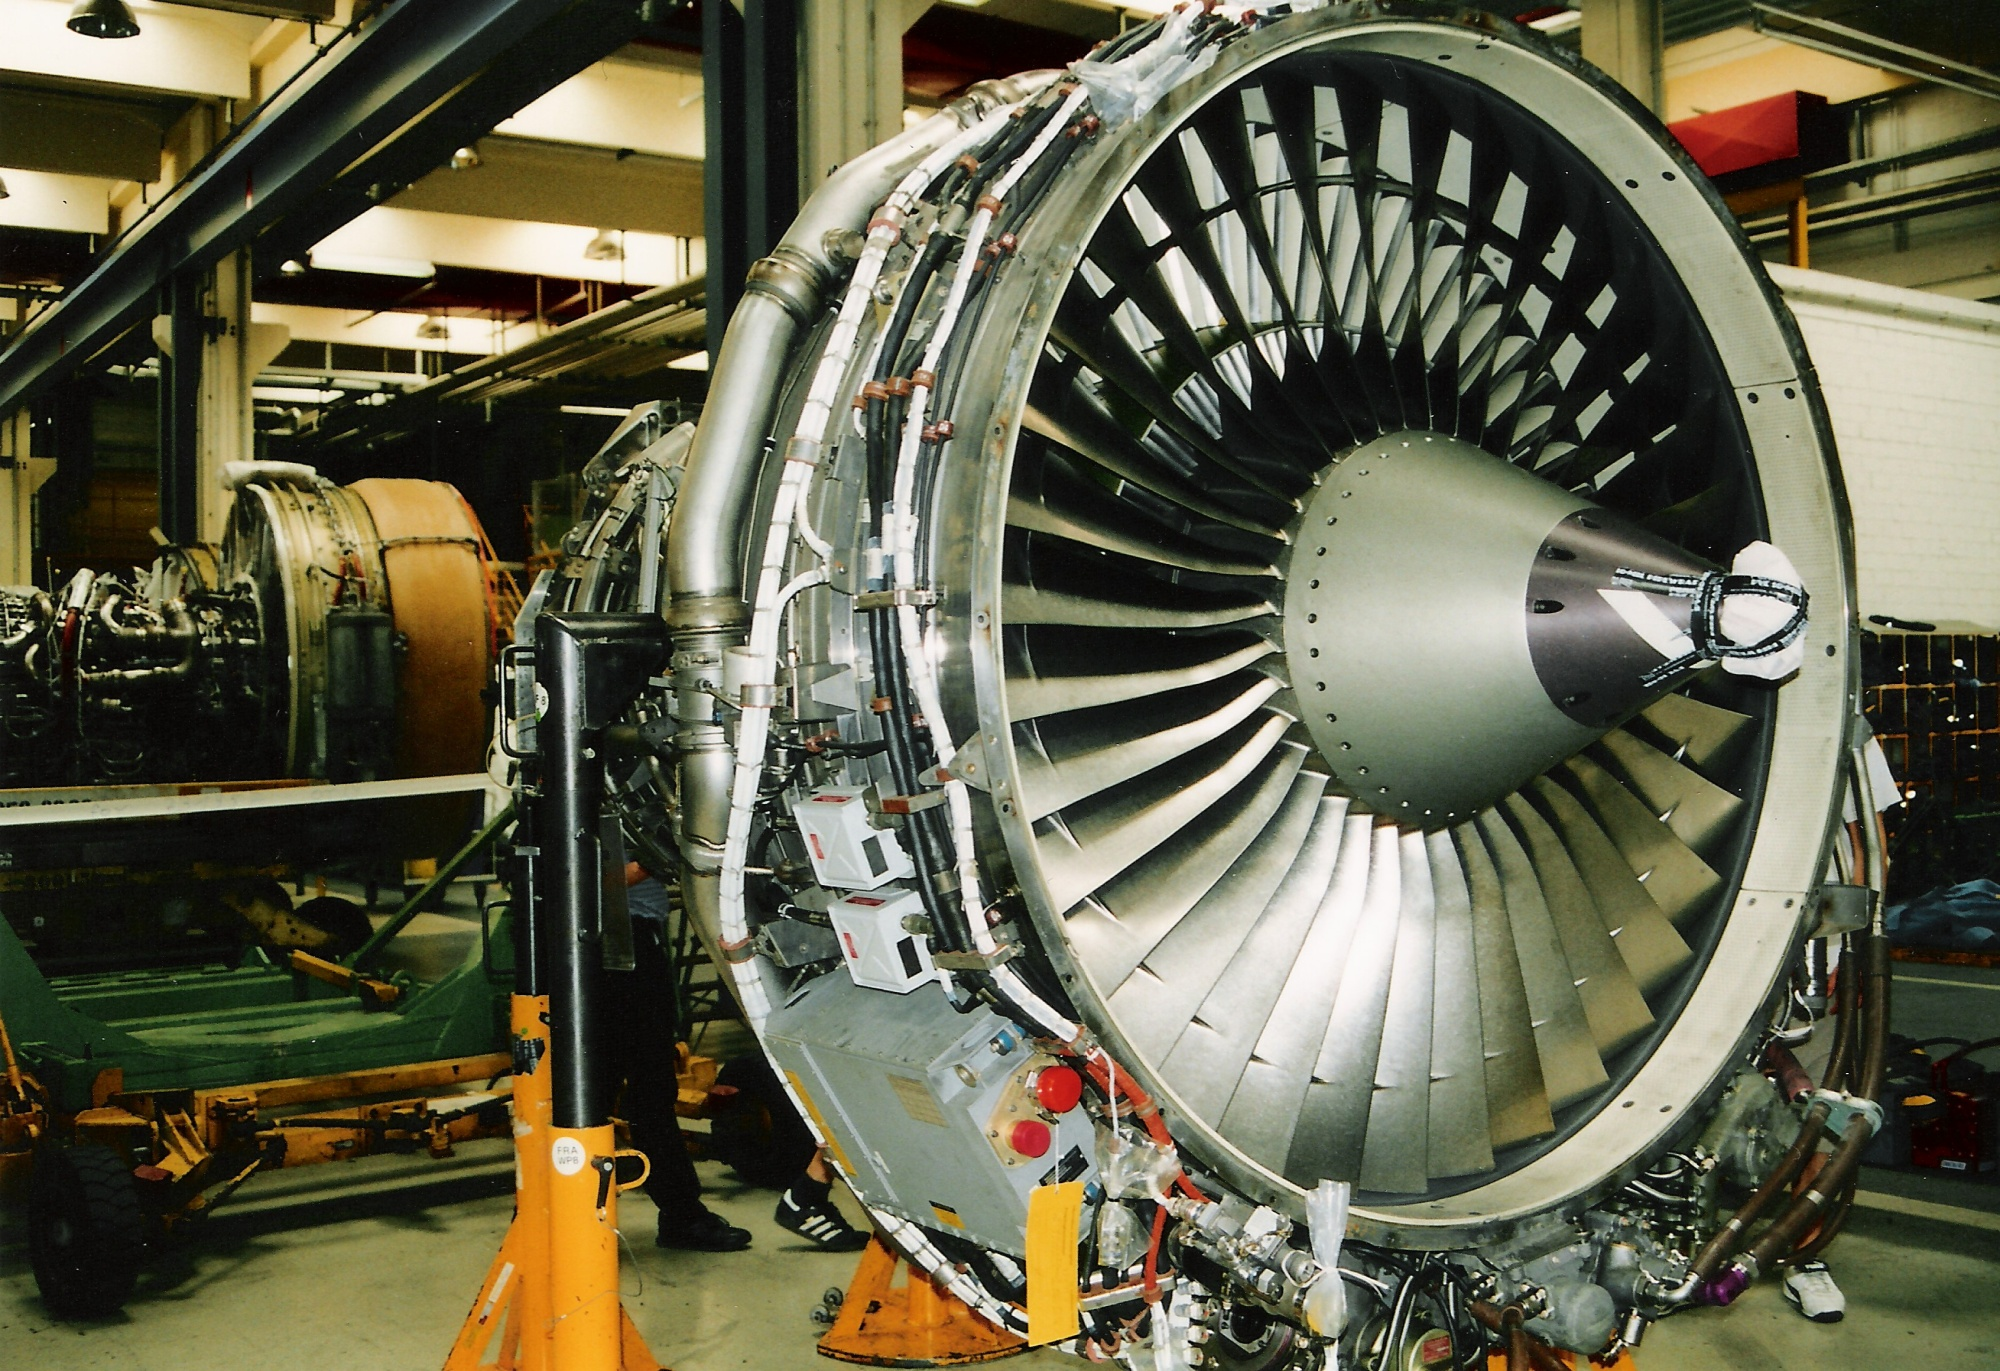 Difference Between Turbojet and Turbofan